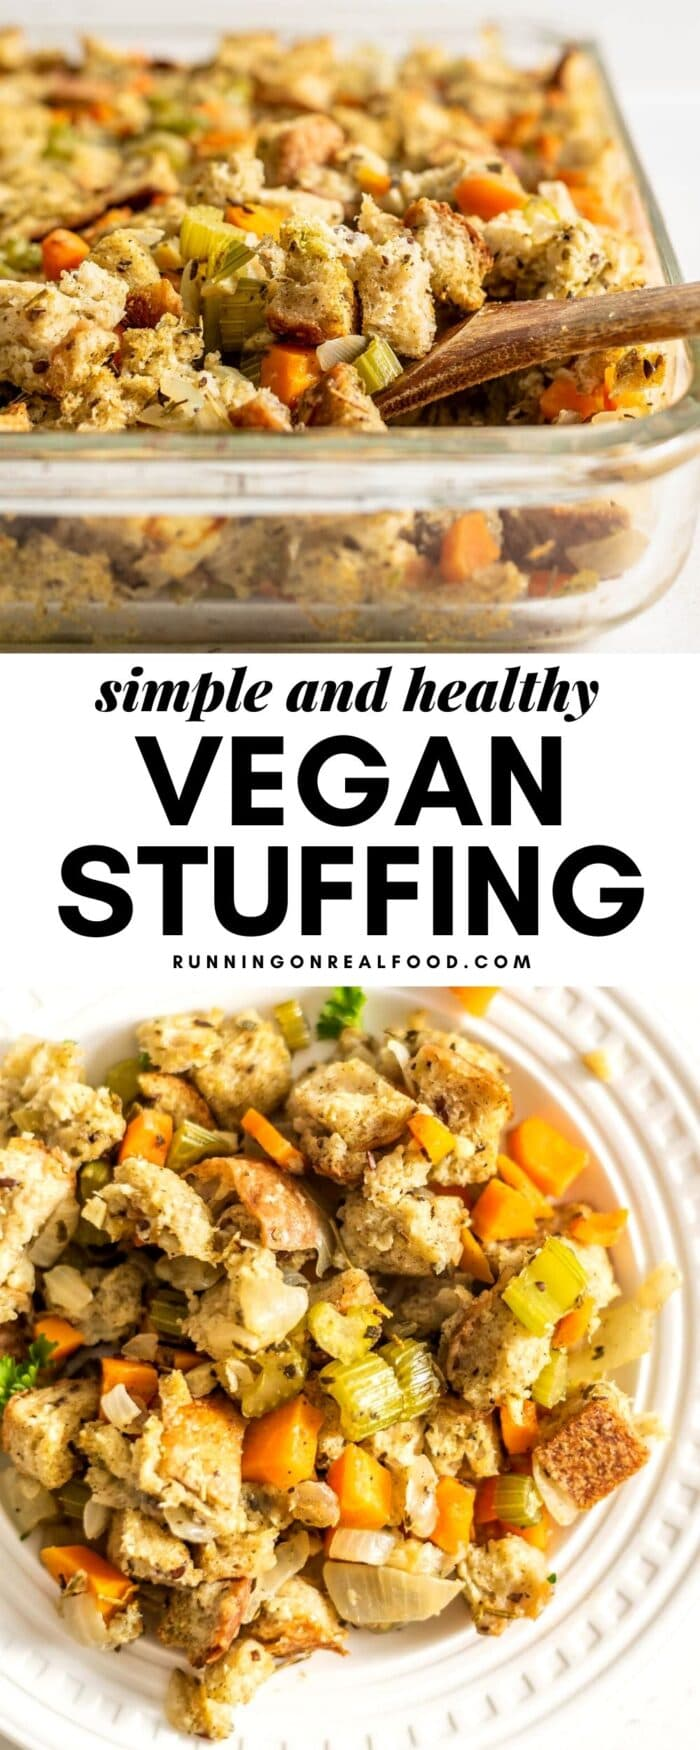 Pinterest graphic for simple and healthy vegan stuffing with 2 images and a text overlay.